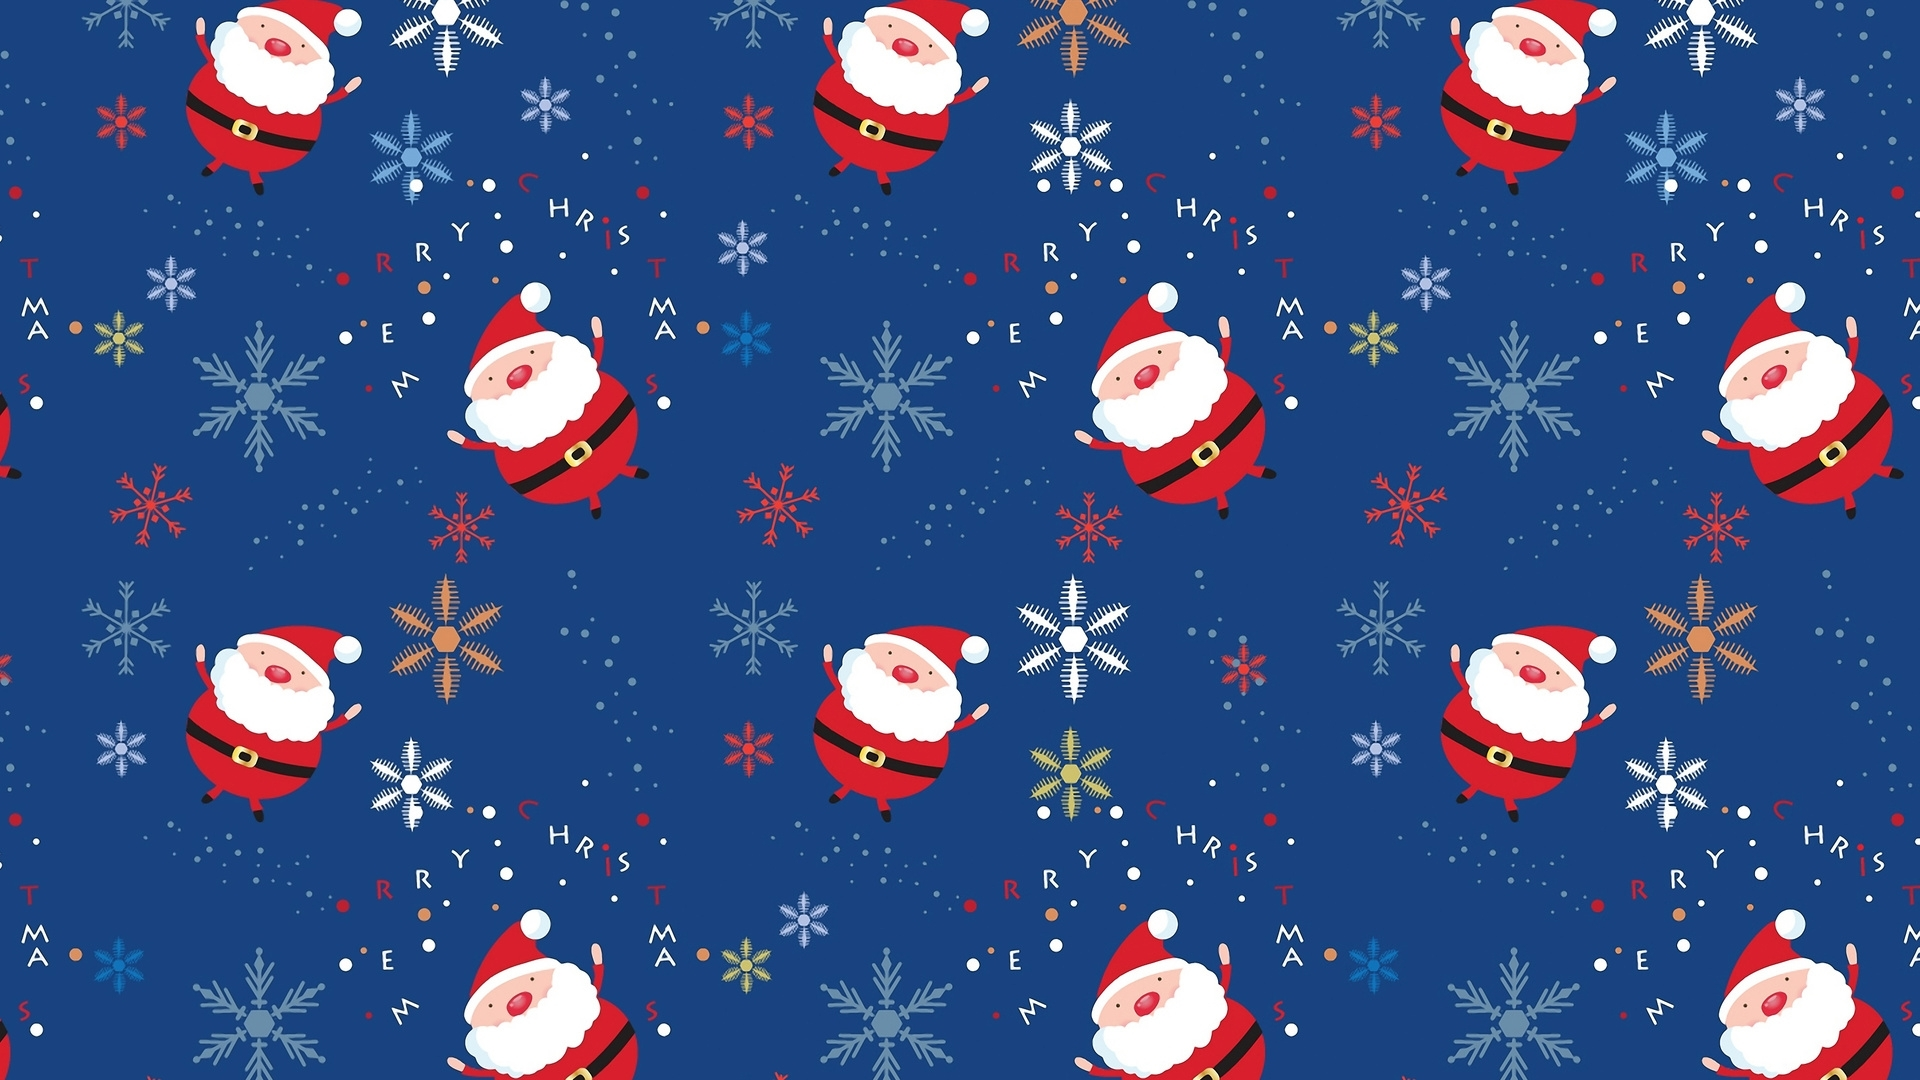 10 new cute christmas desktop backgrounds full hd 1920×1080 for pc